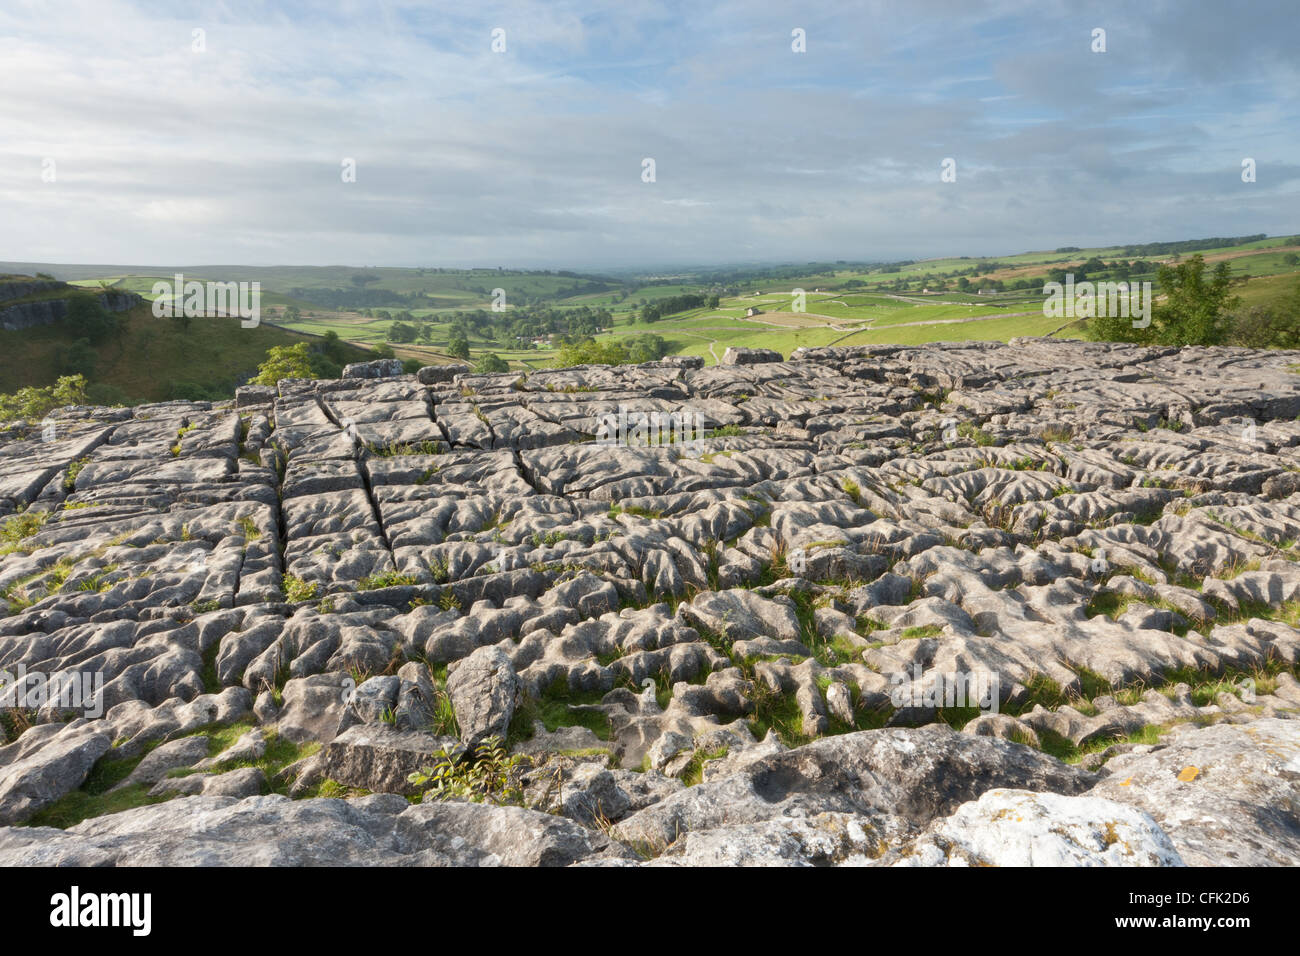 View from Malham Cove - limestone pavement in the Yorkshire Dales National Park - Harry Potter and the Deathly Hallows - Stock Image